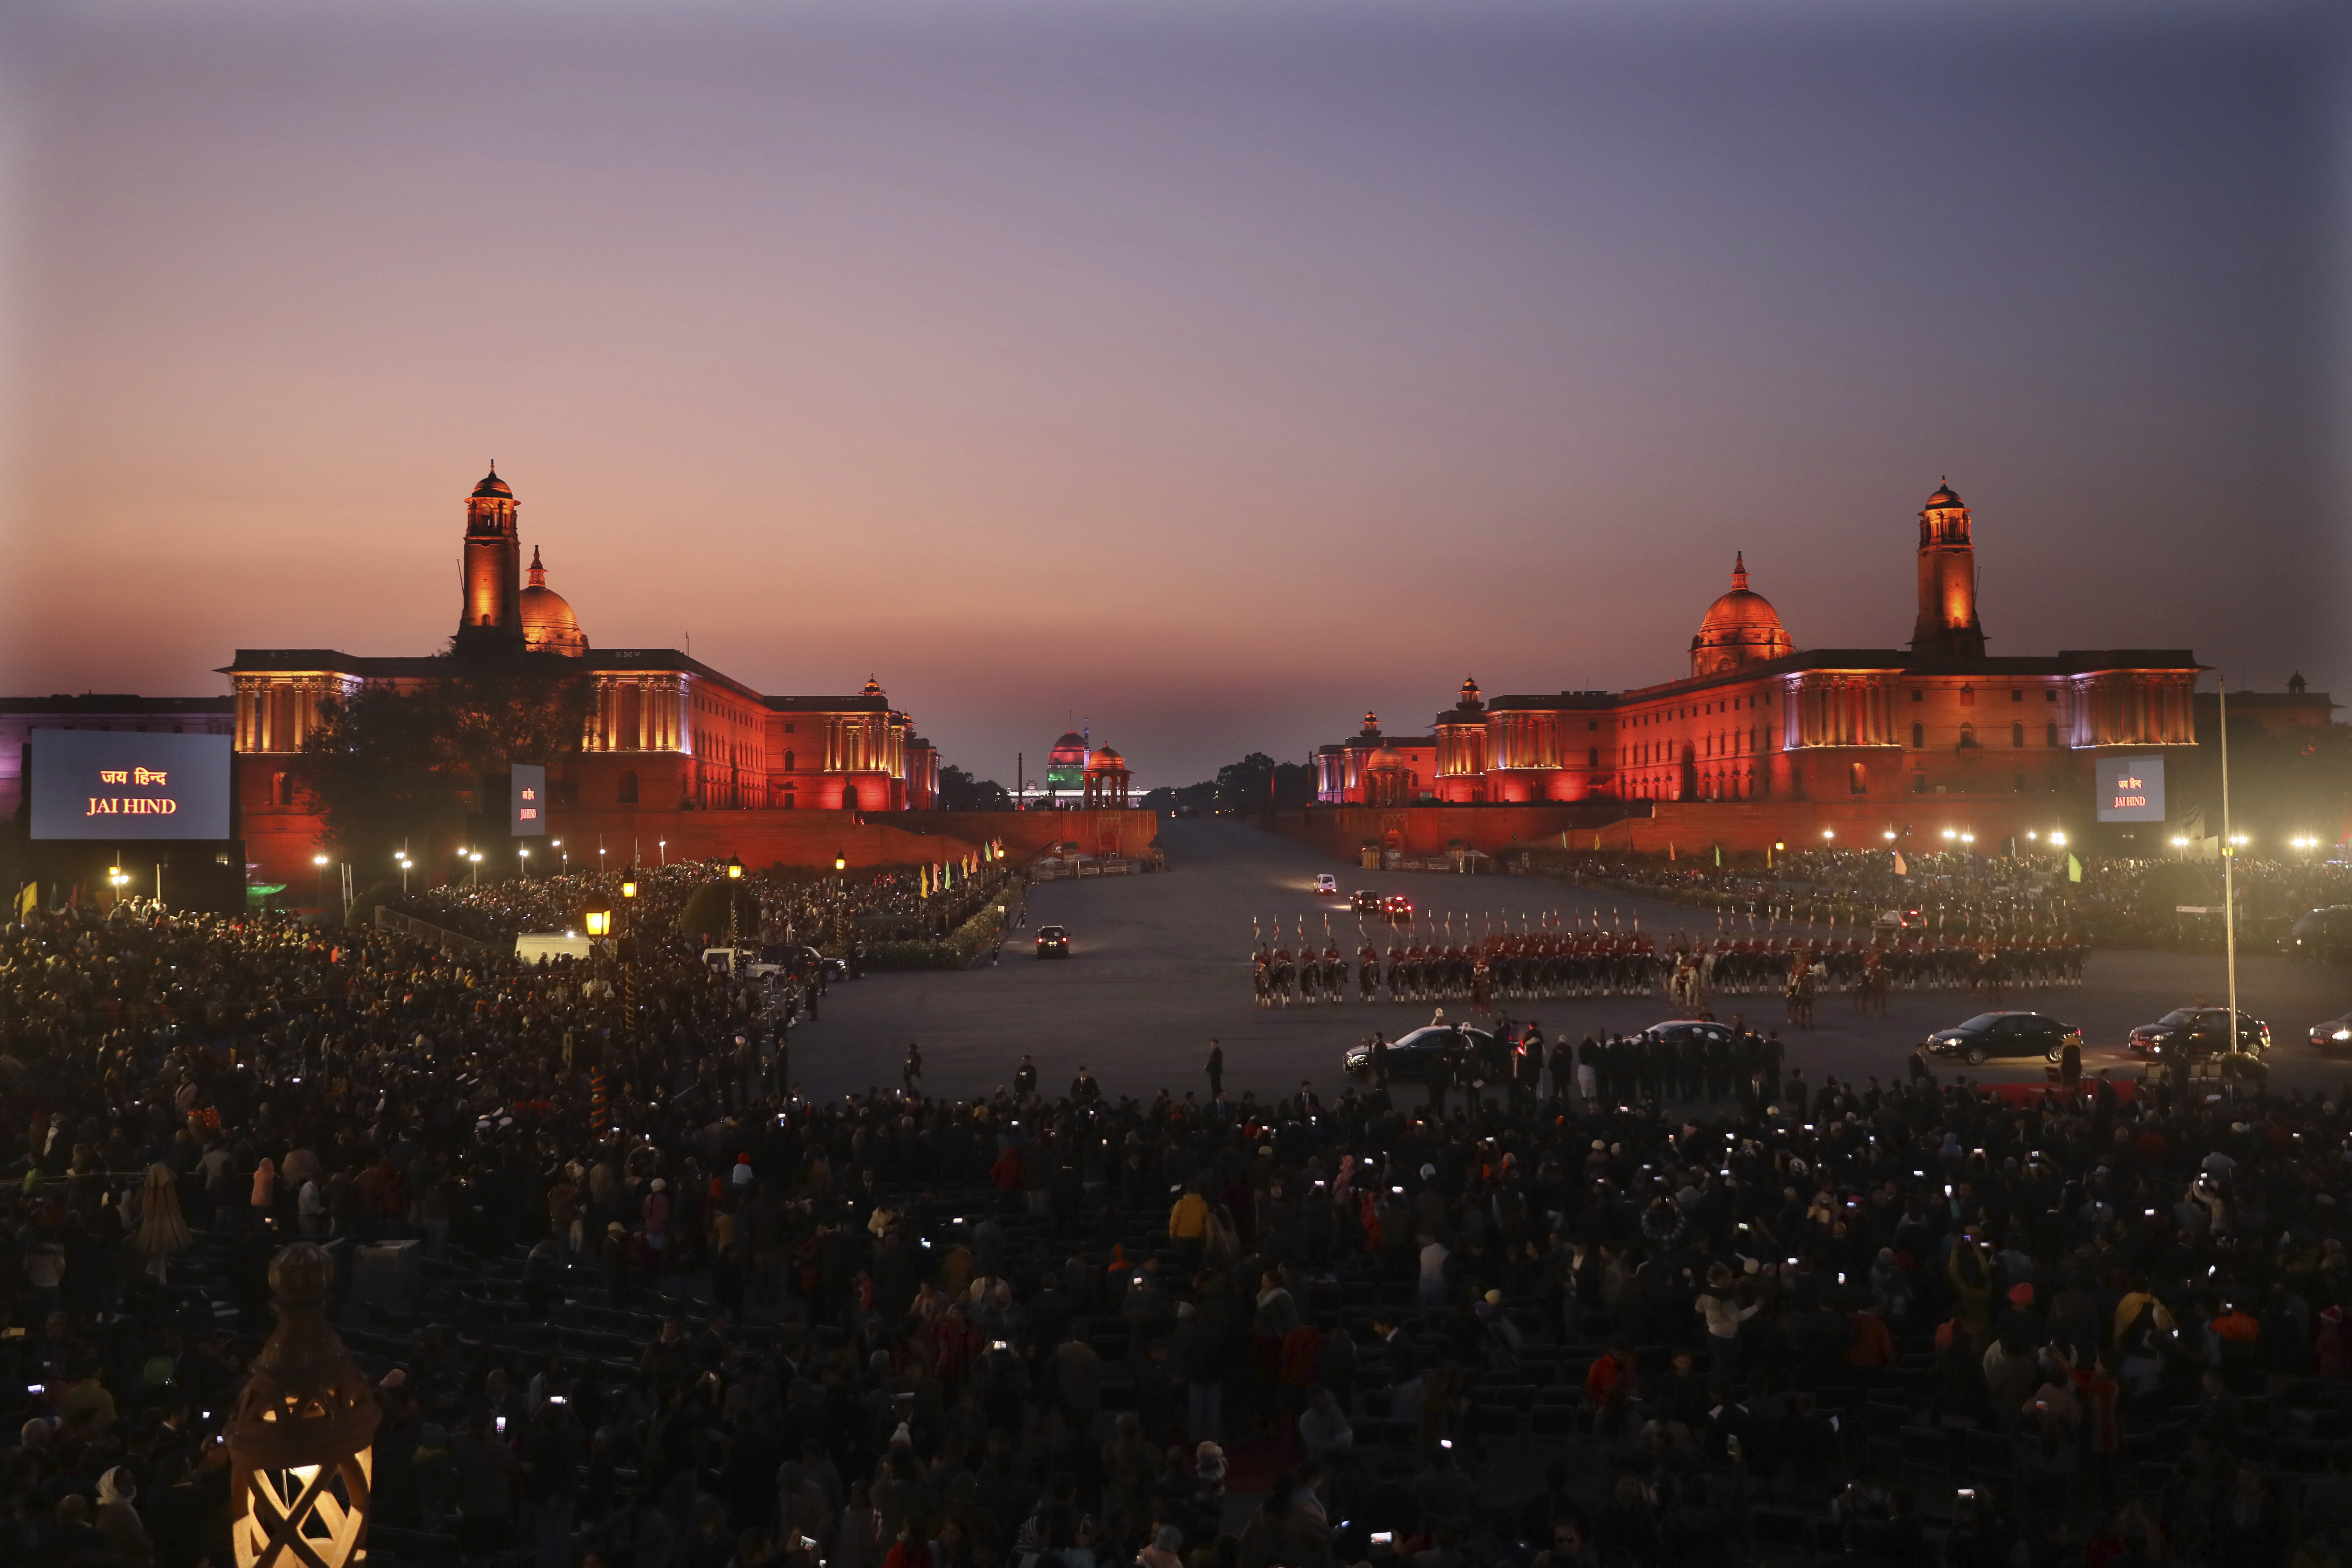 Members of the crowd hold up their mobile phones to take pictures of the illuminated Indian Presidential Palace, center, and the north and south blocks, the government seat of power, as the president leaves at the end of the Beating Retreat ceremony at Raisina hills, in New Delhi, India, Wednesday